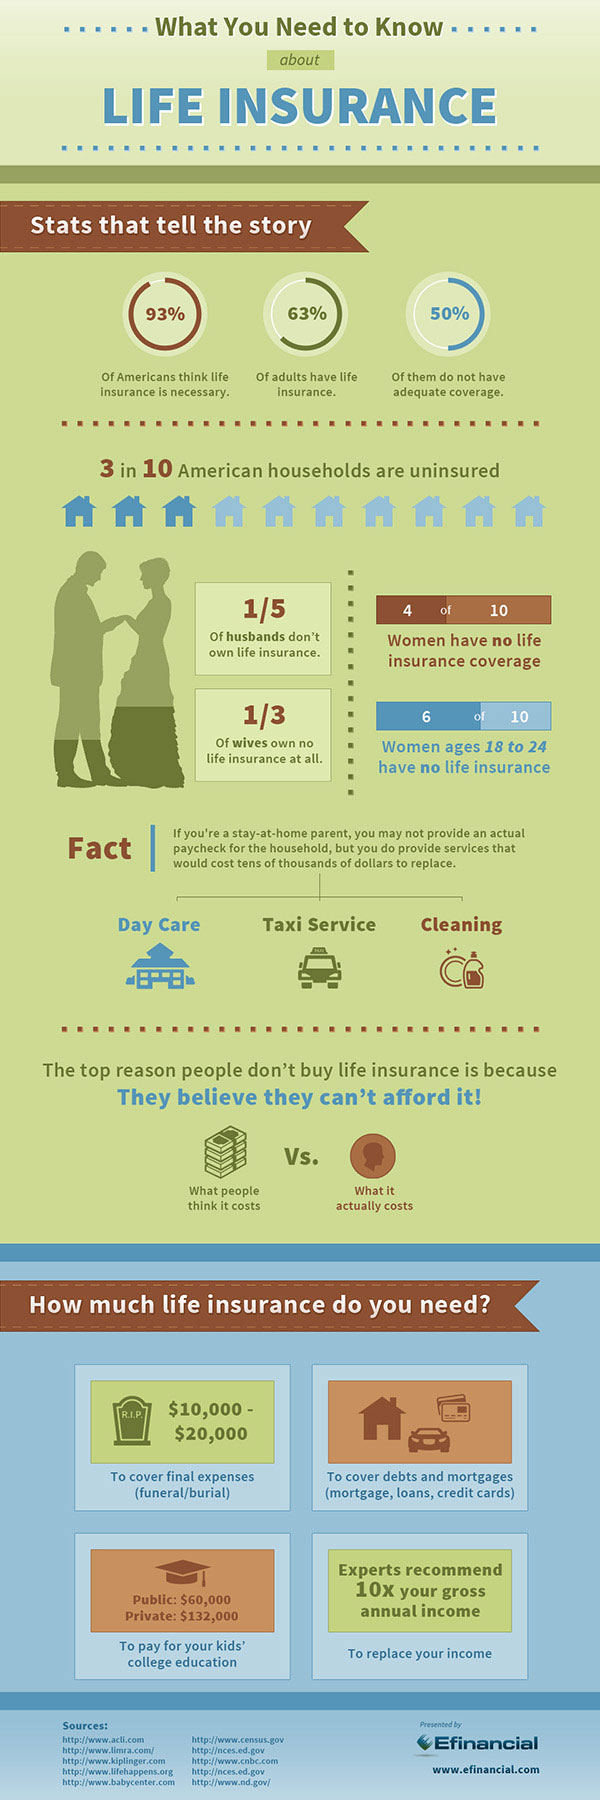 Car Insurance Quotes Ct What You Should Know About Life Insurance Infographic  Sfgate .